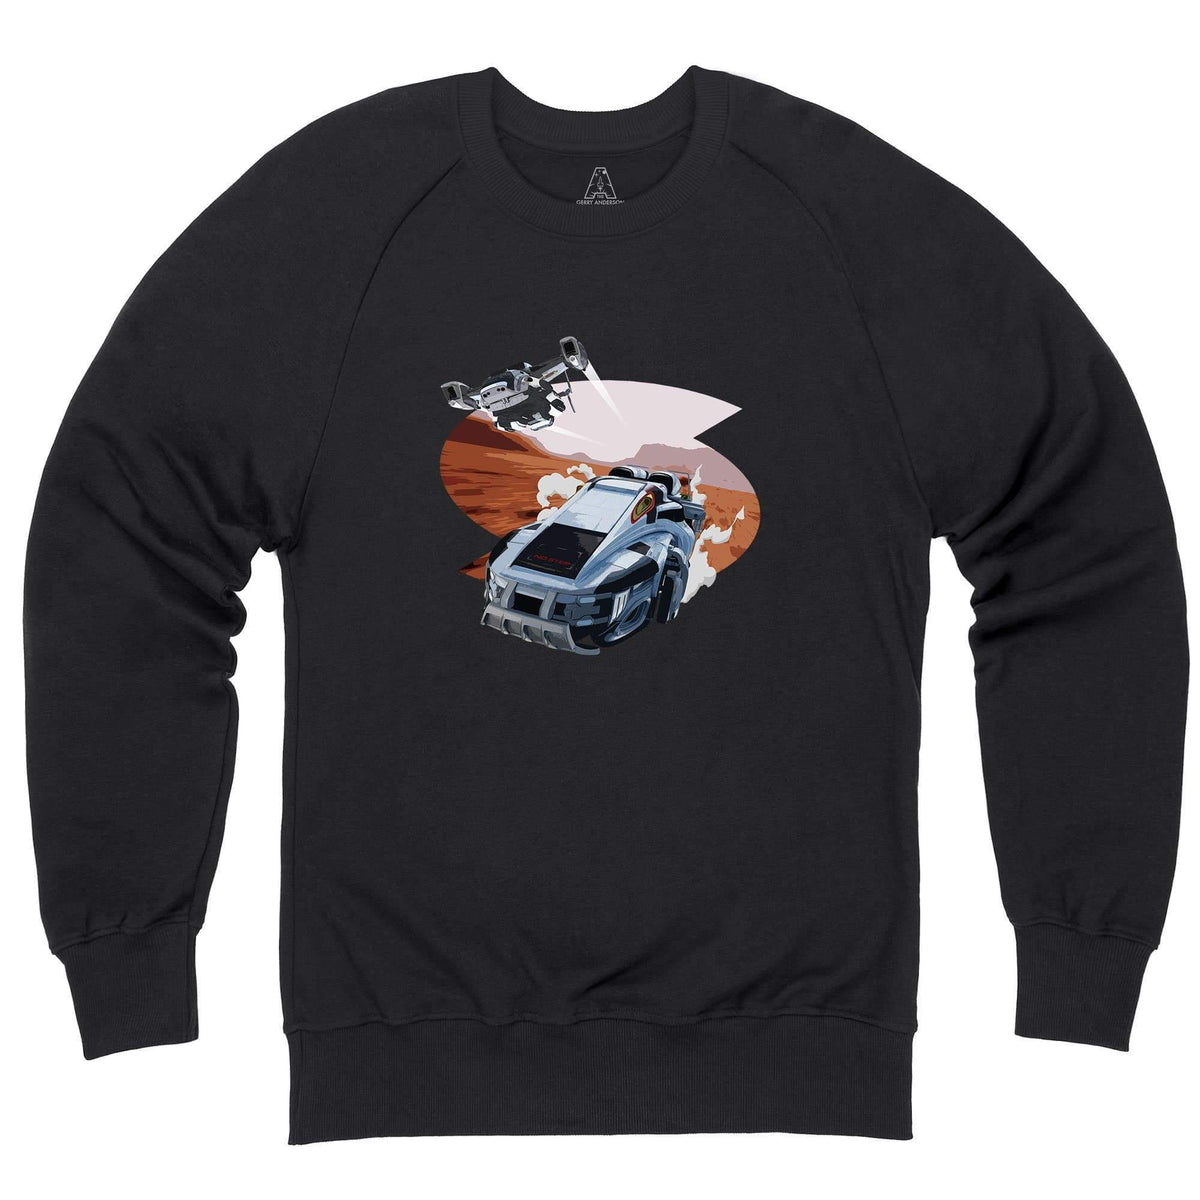 New Captain Scarlet Rhino Sweatshirt [Official & Exclusive] - The Gerry Anderson Store